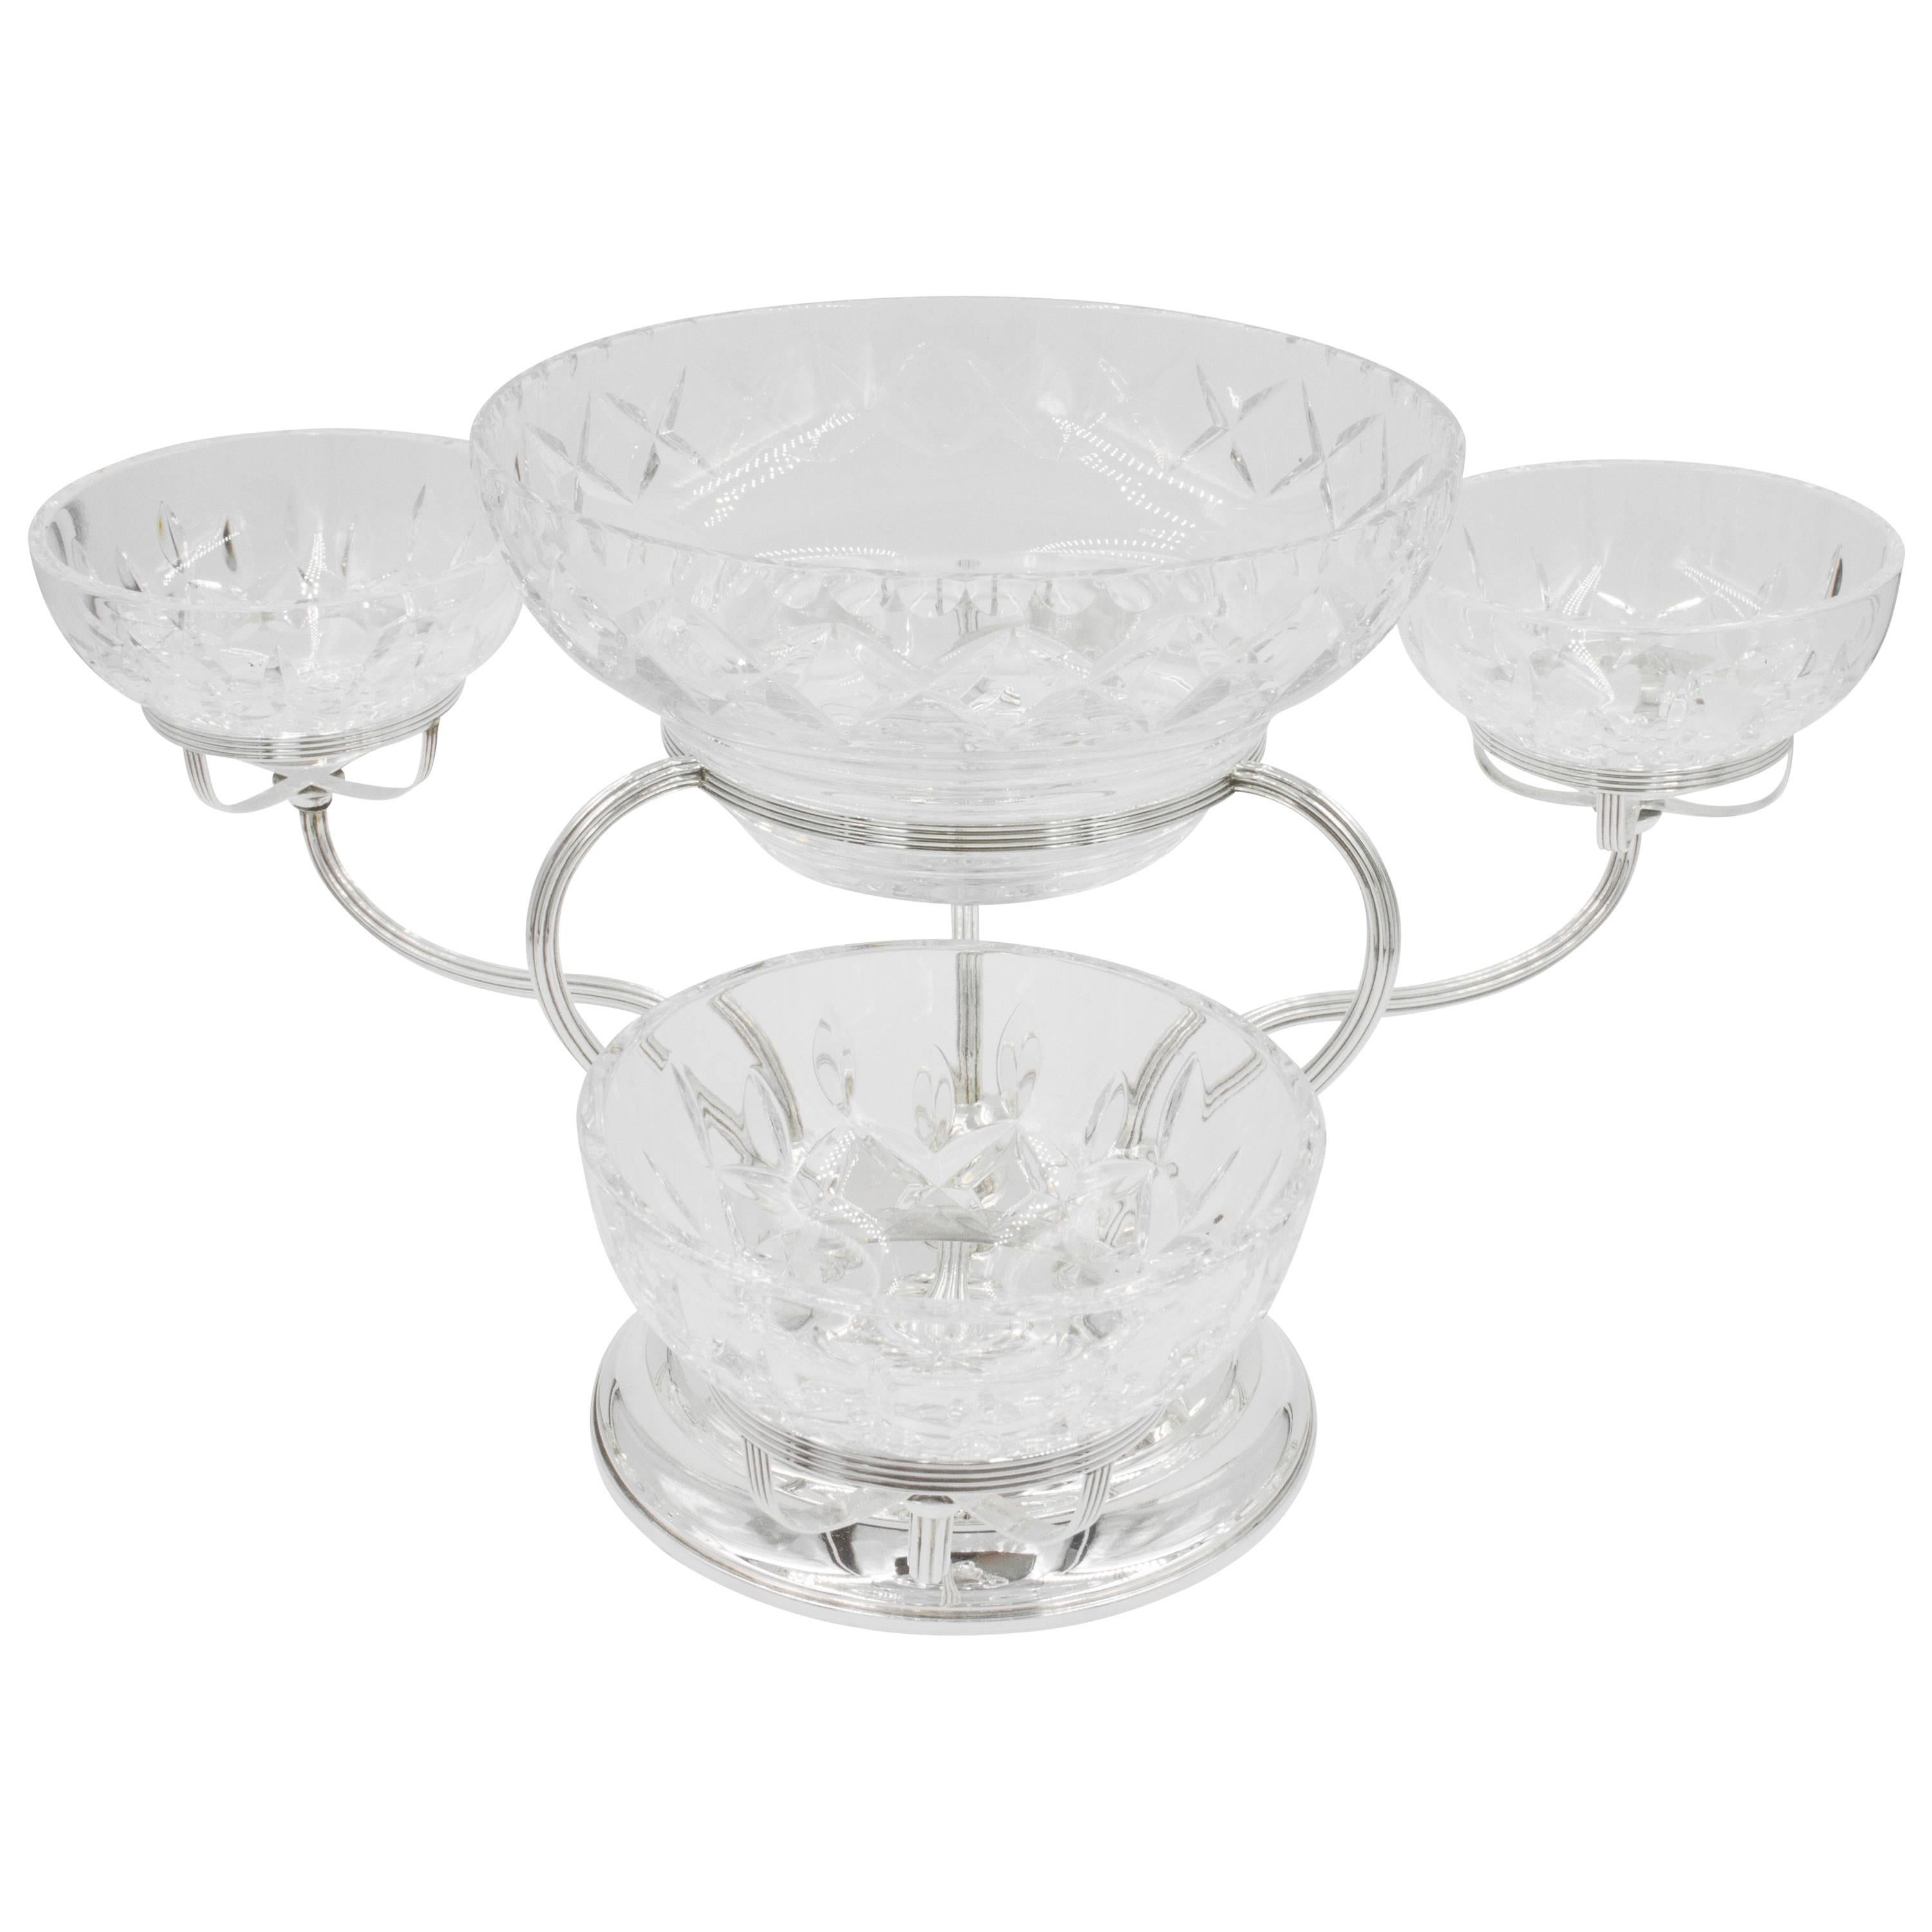 Sterling and Crystal Epergne